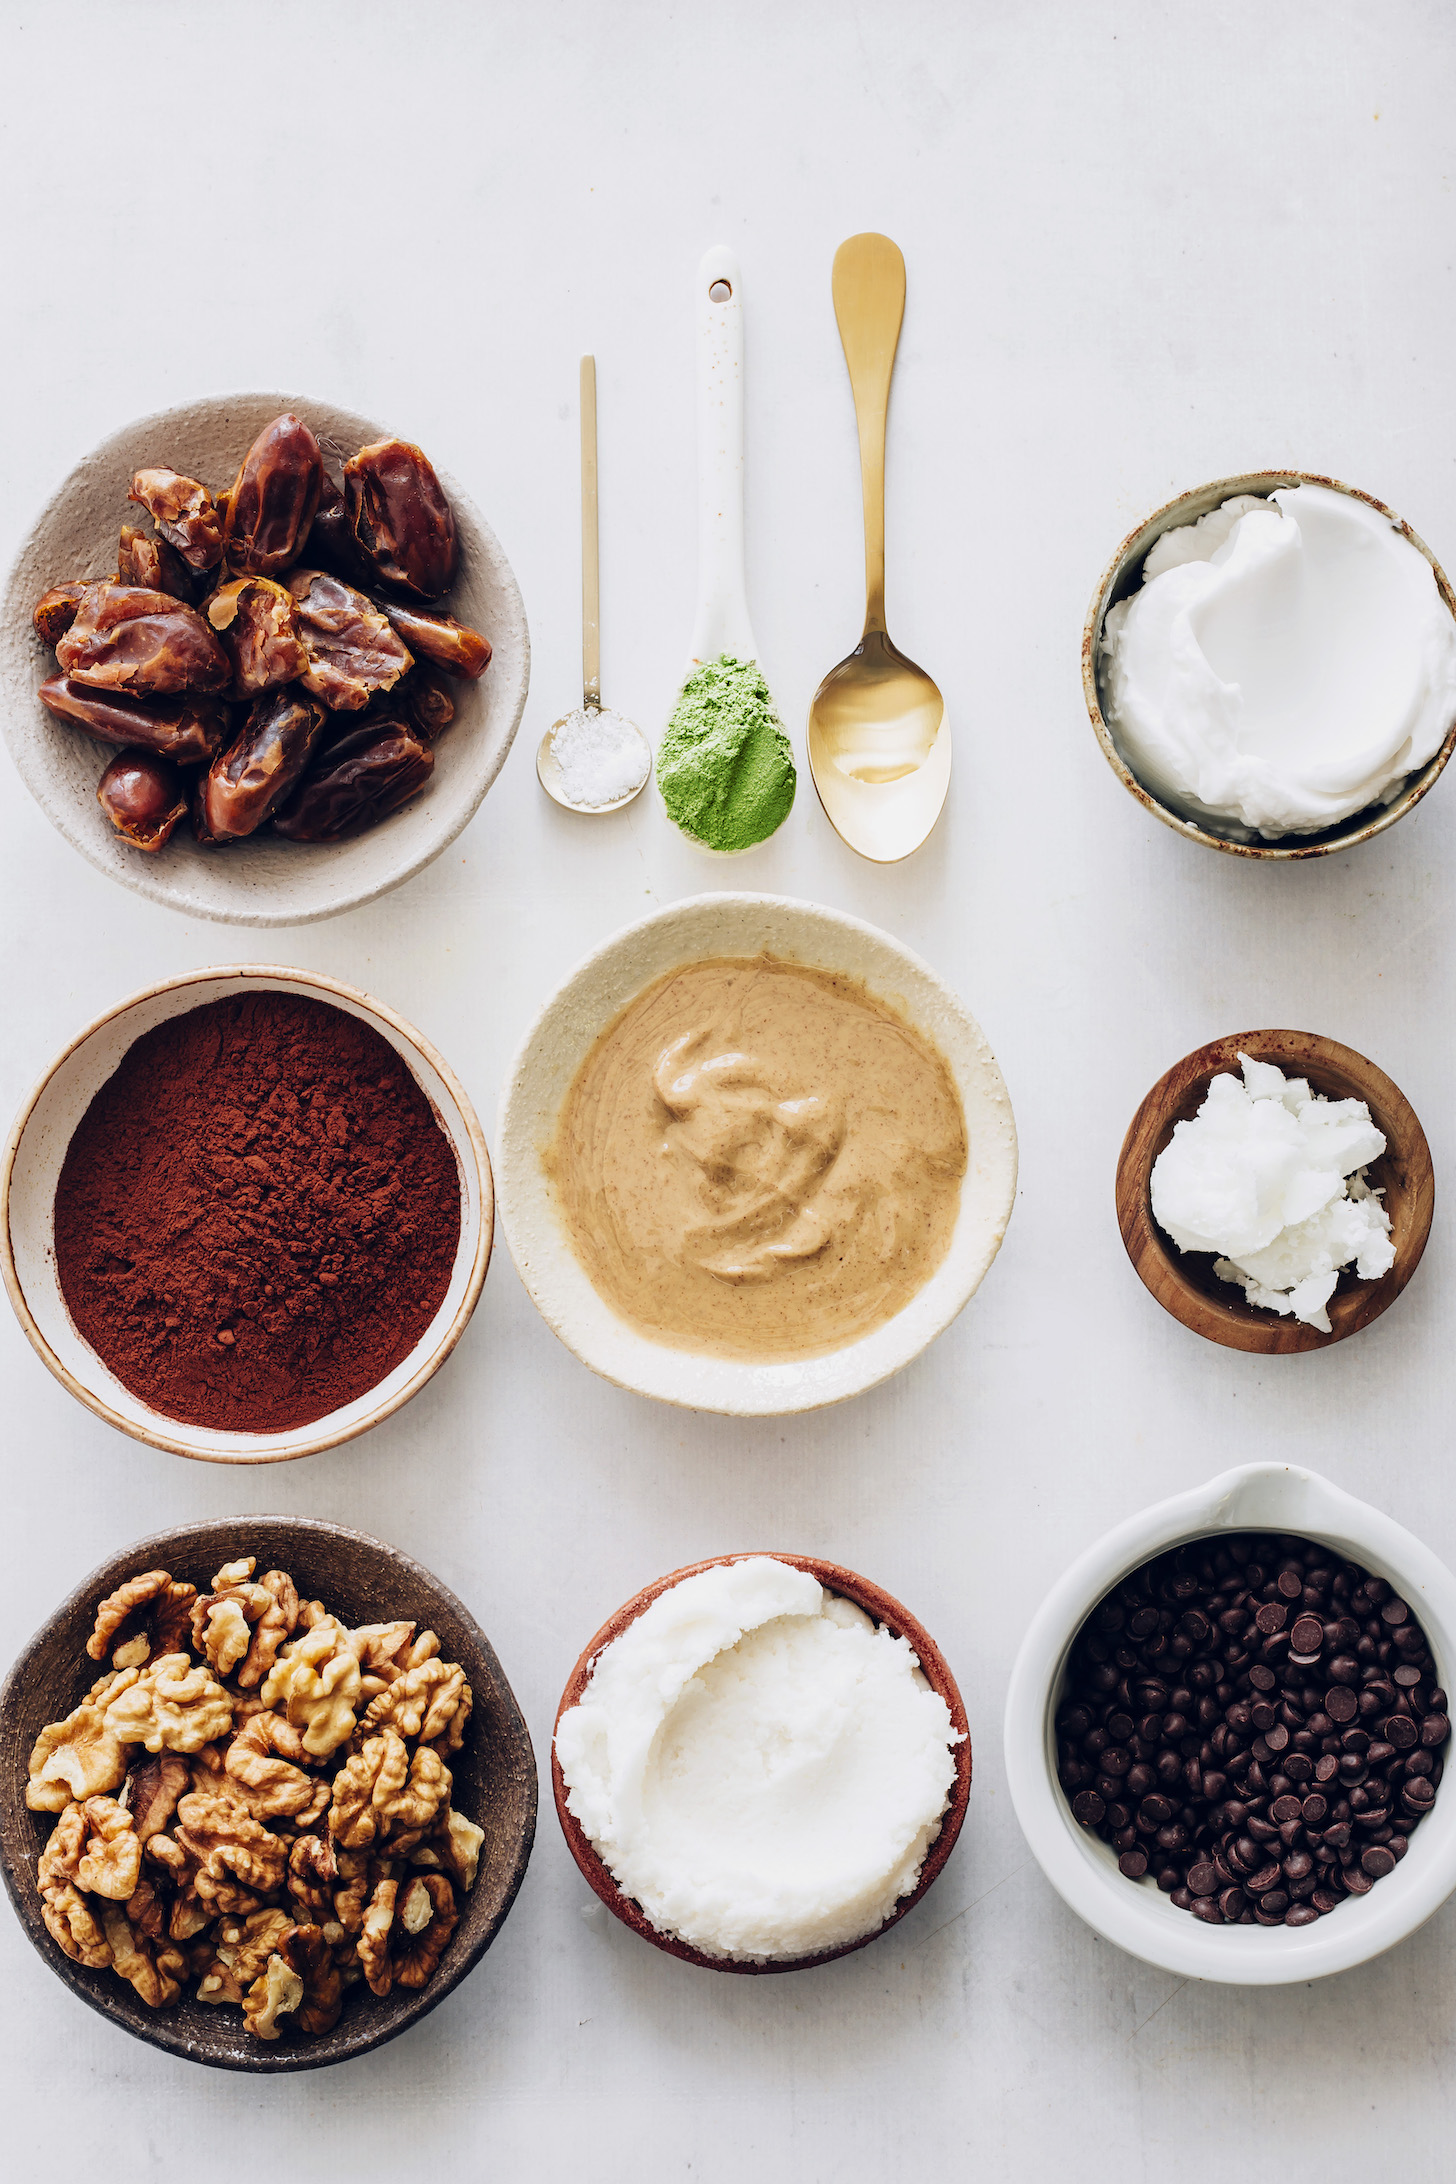 Dates, cocoa powder, walnuts, coconut butter, cashew butter, peppermint extract, coconut milk, coconut oil, moringa powder, salt, and chocolate chips